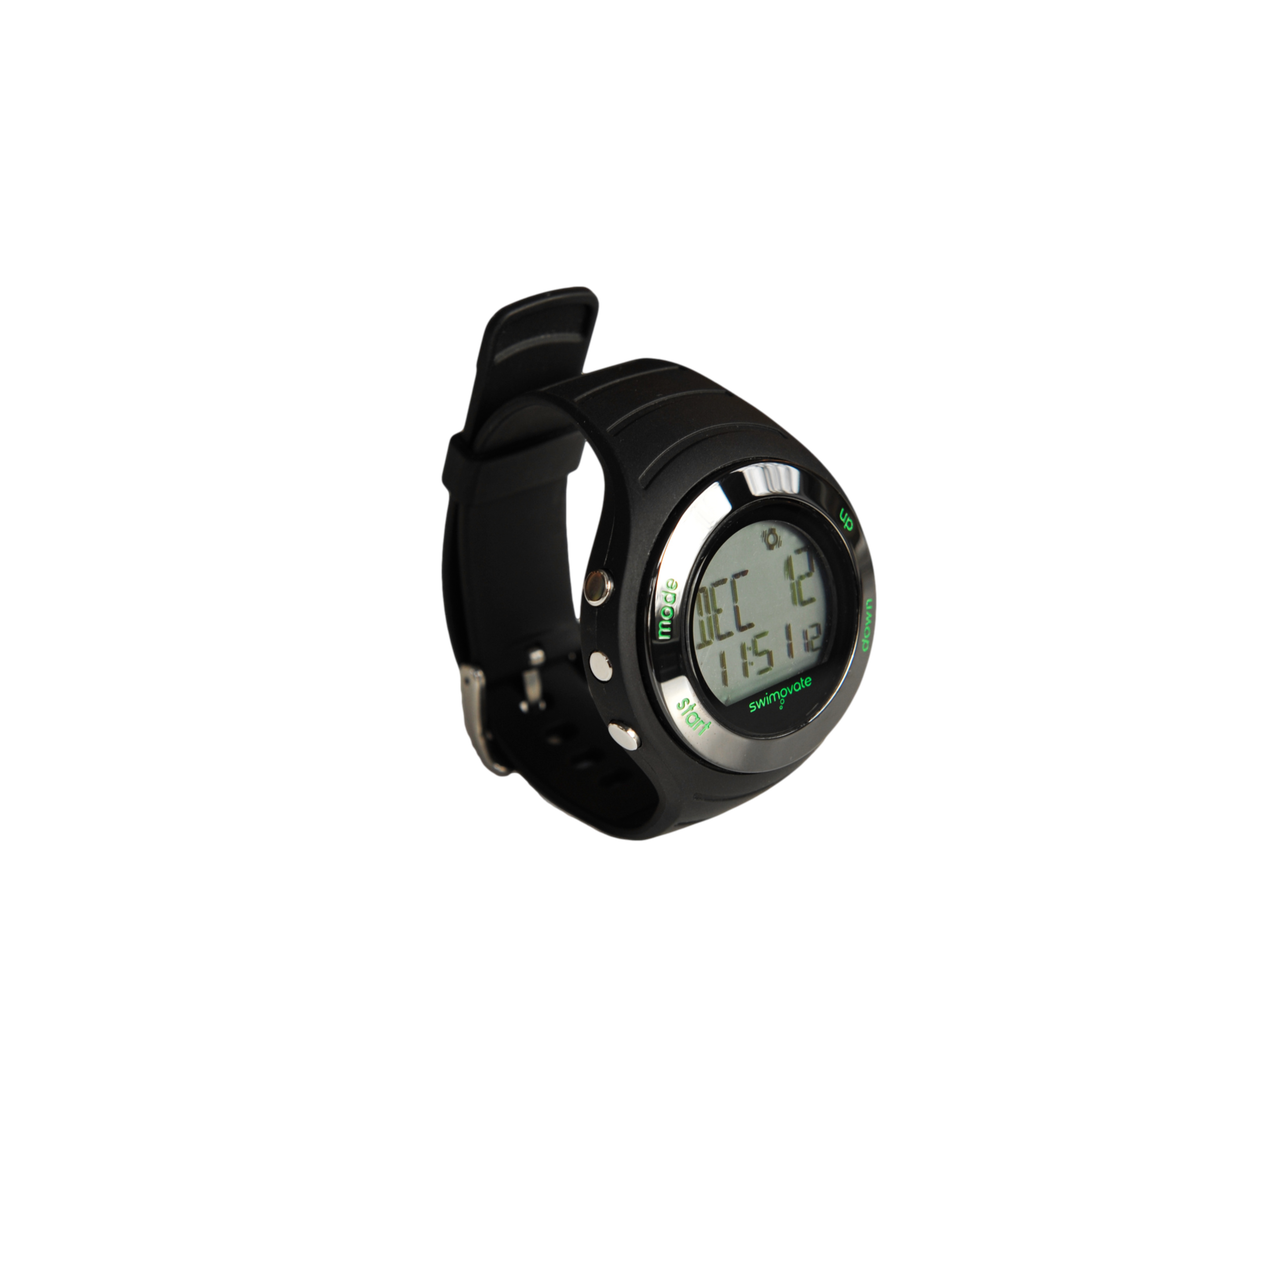 Swimovate PoolMate Live Lap Counting Watch - 2019 price